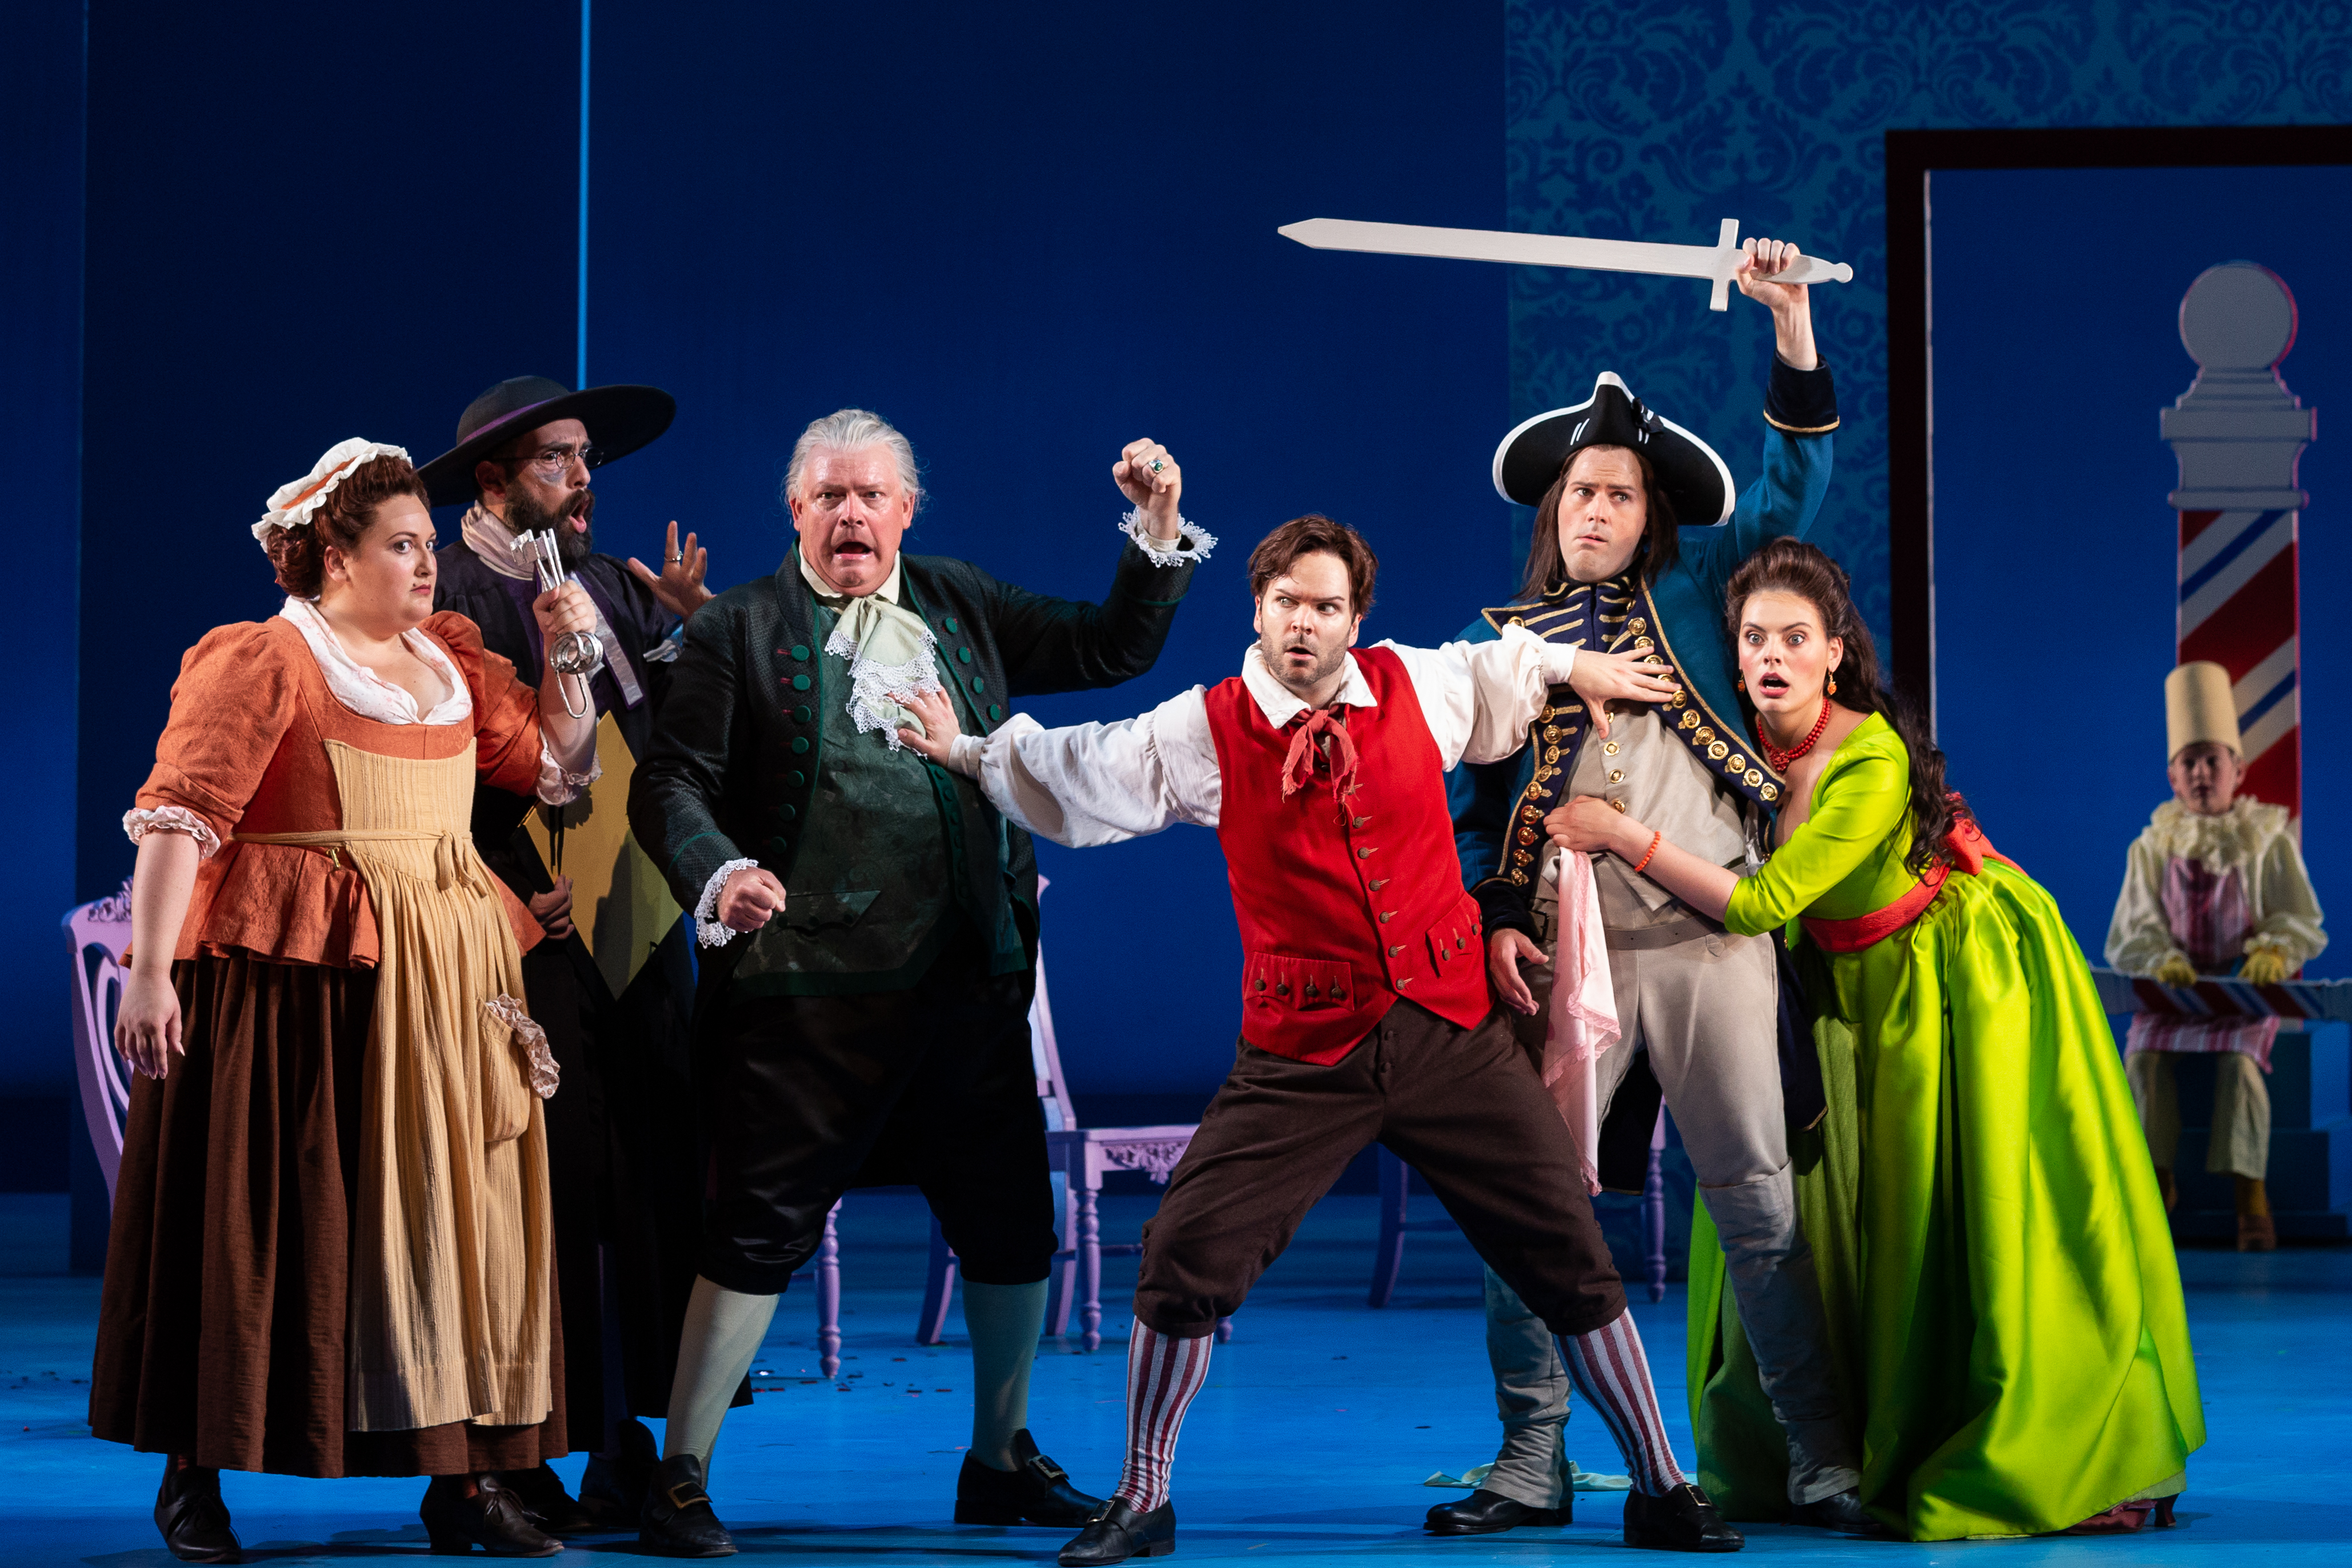 Actors on stage at the Minnesota Opera, performing The Barber of Seville.